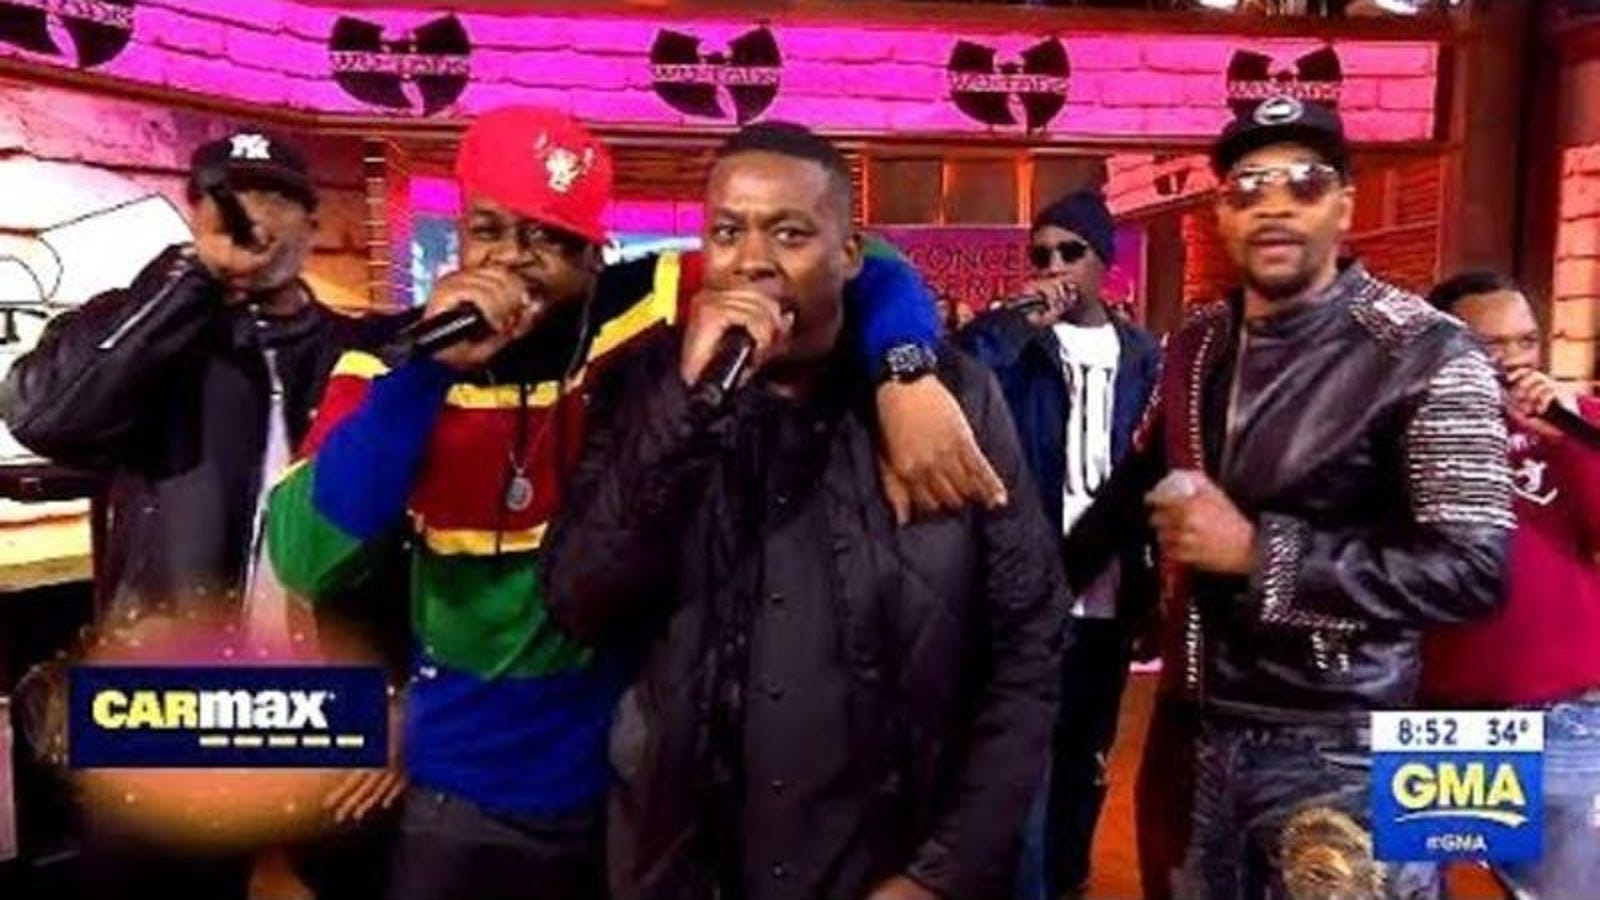 Actually, our timeline is good: Here's the Wu-Tang Clan on Good Morning America